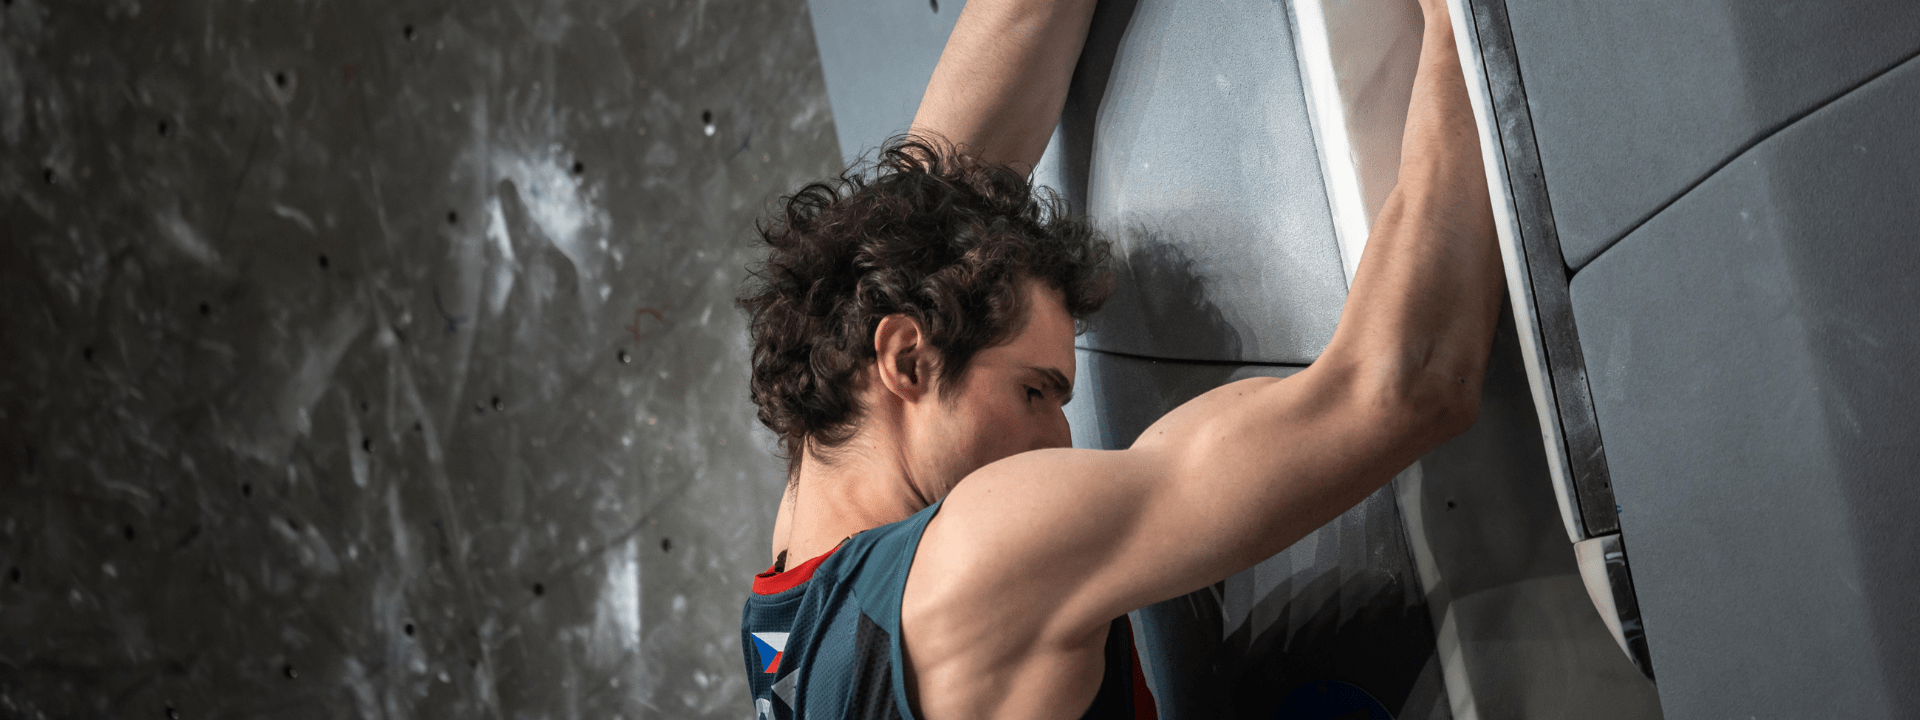 ONDRA AND GARNBRET QUALIFY FOR MEIRINGEN FINALS IN FIRST PLACE